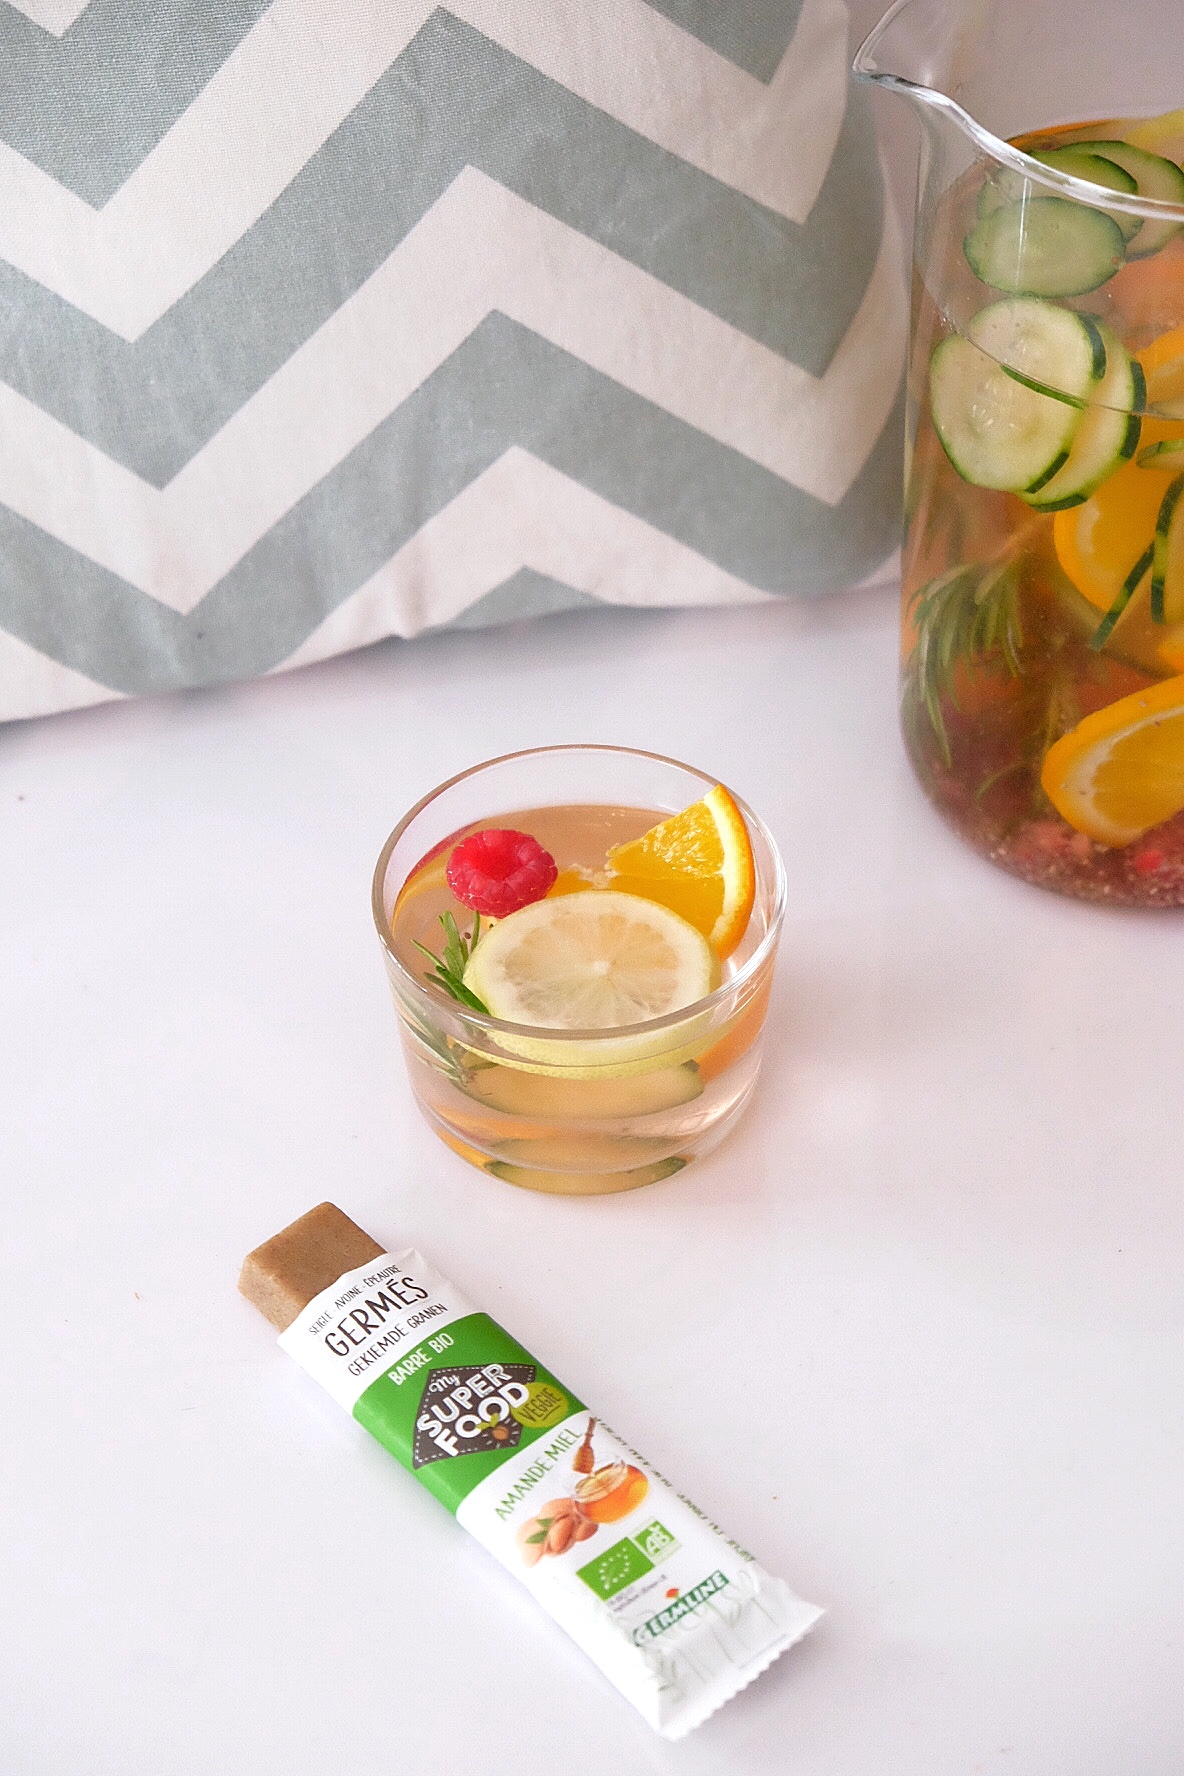 Flavored detox water